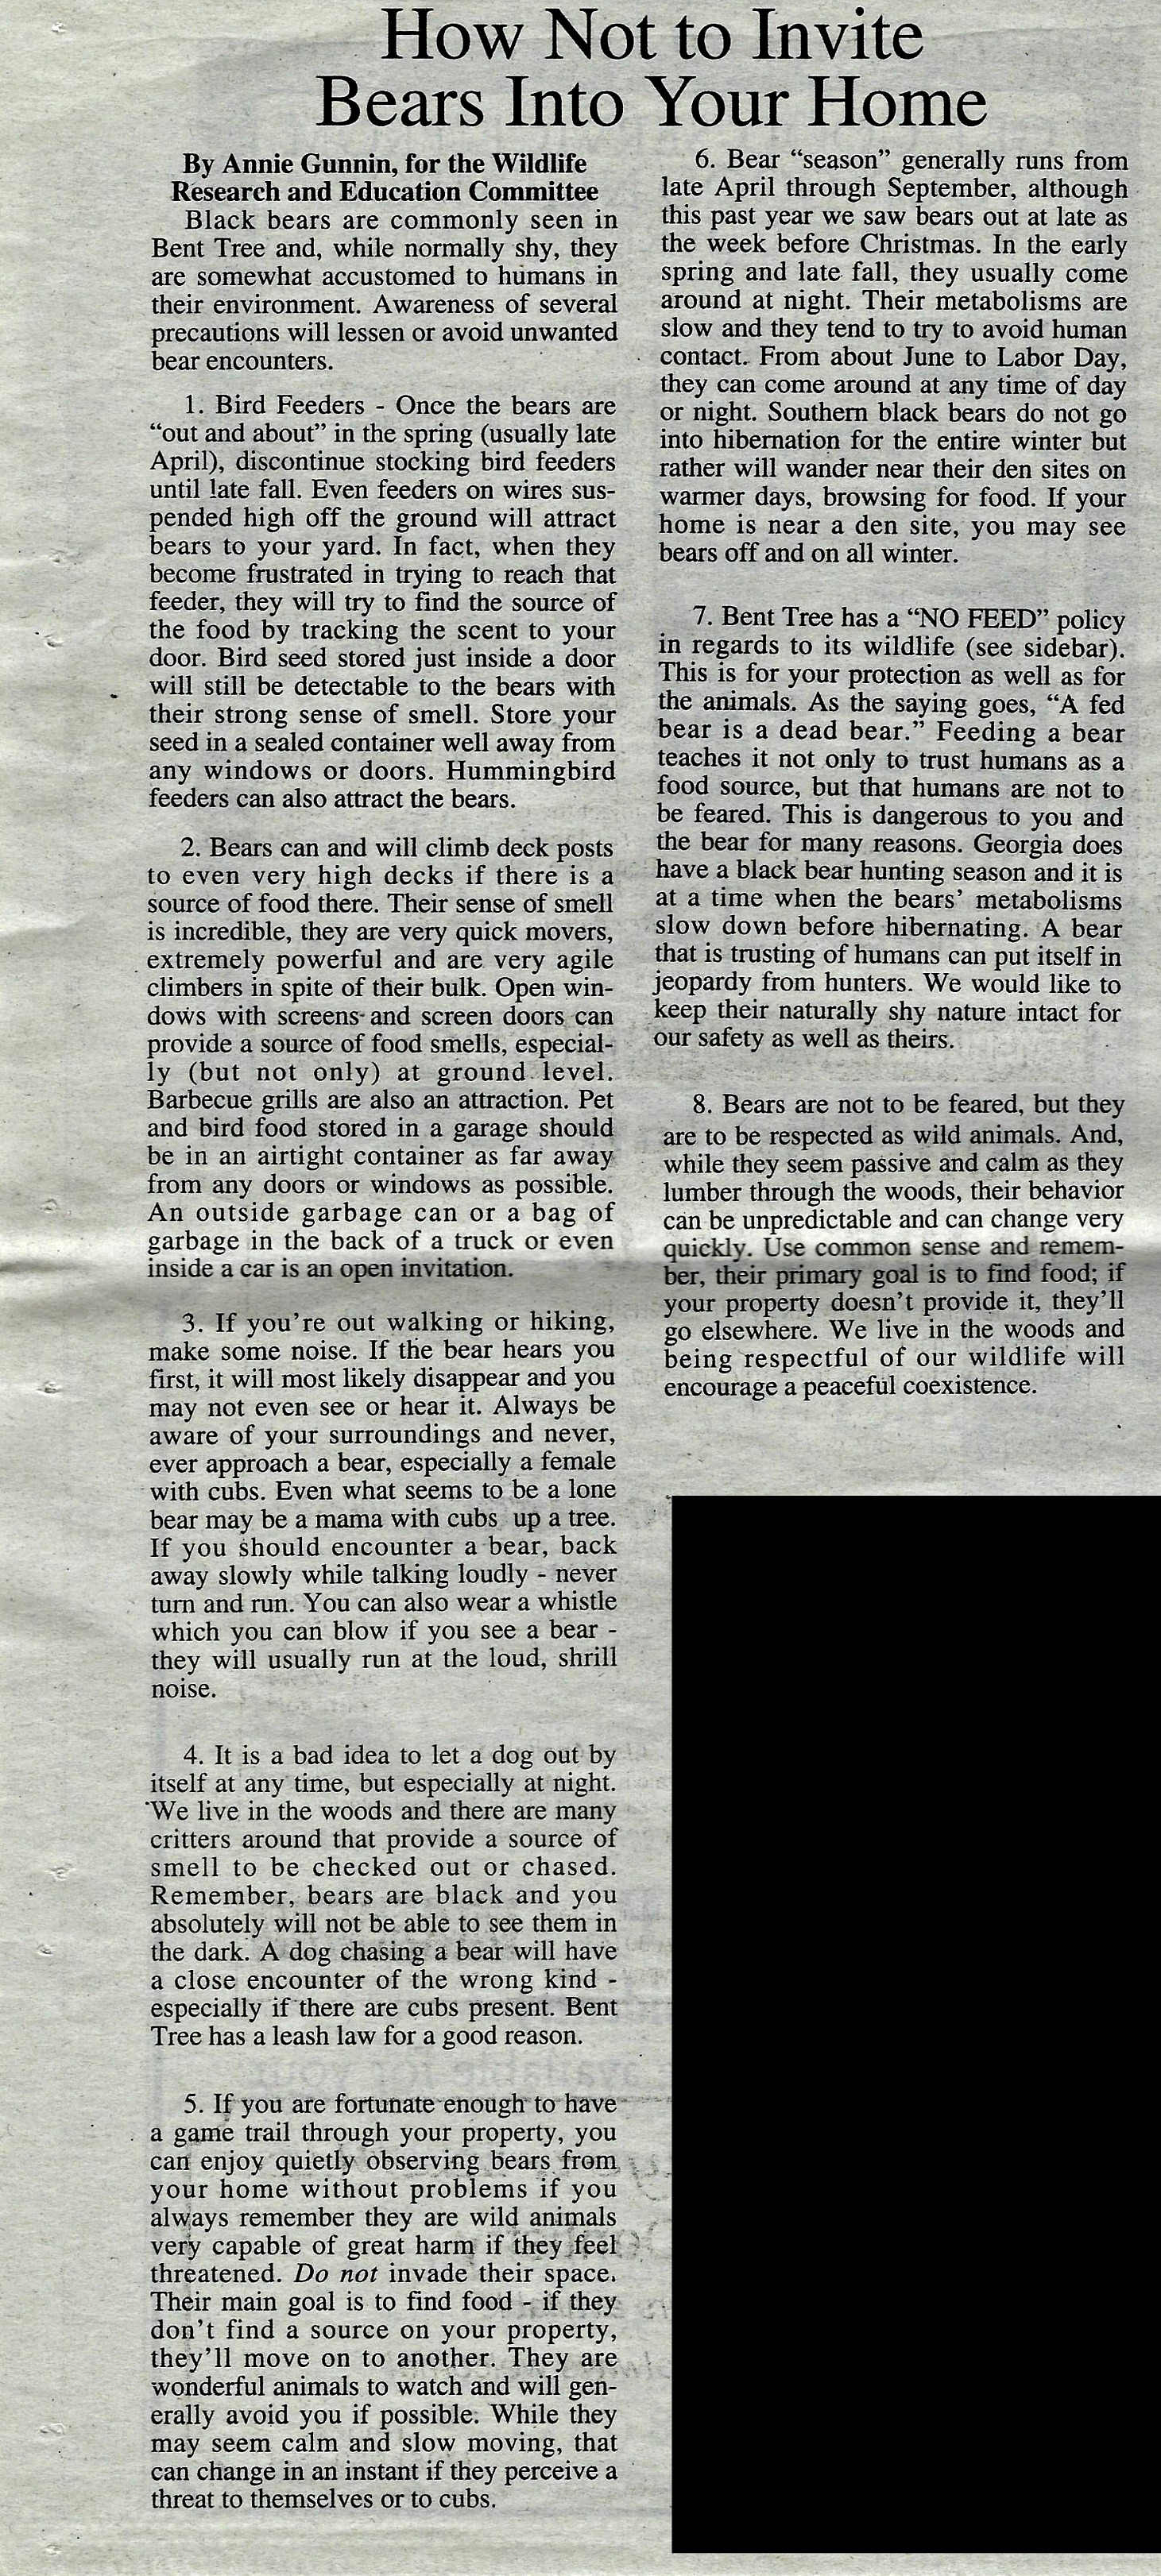 Echo article from 2003